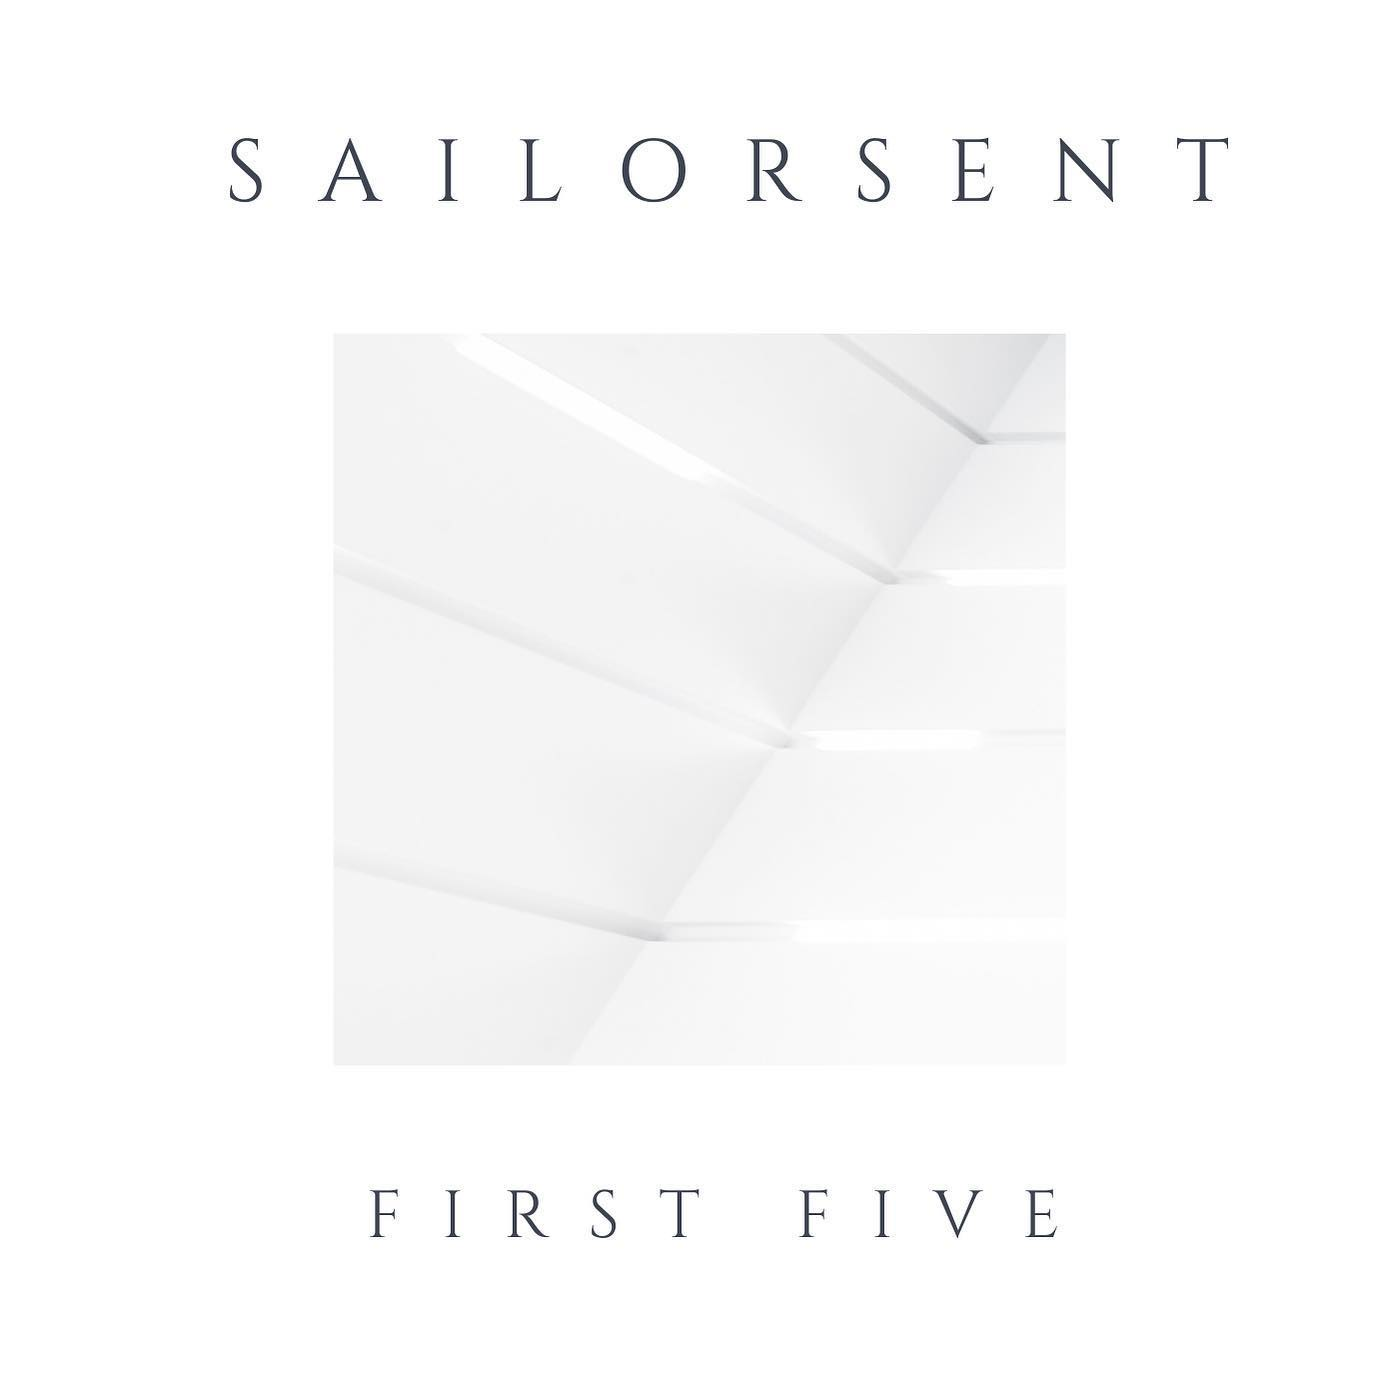 Sailorsent | First Five | Self-Released